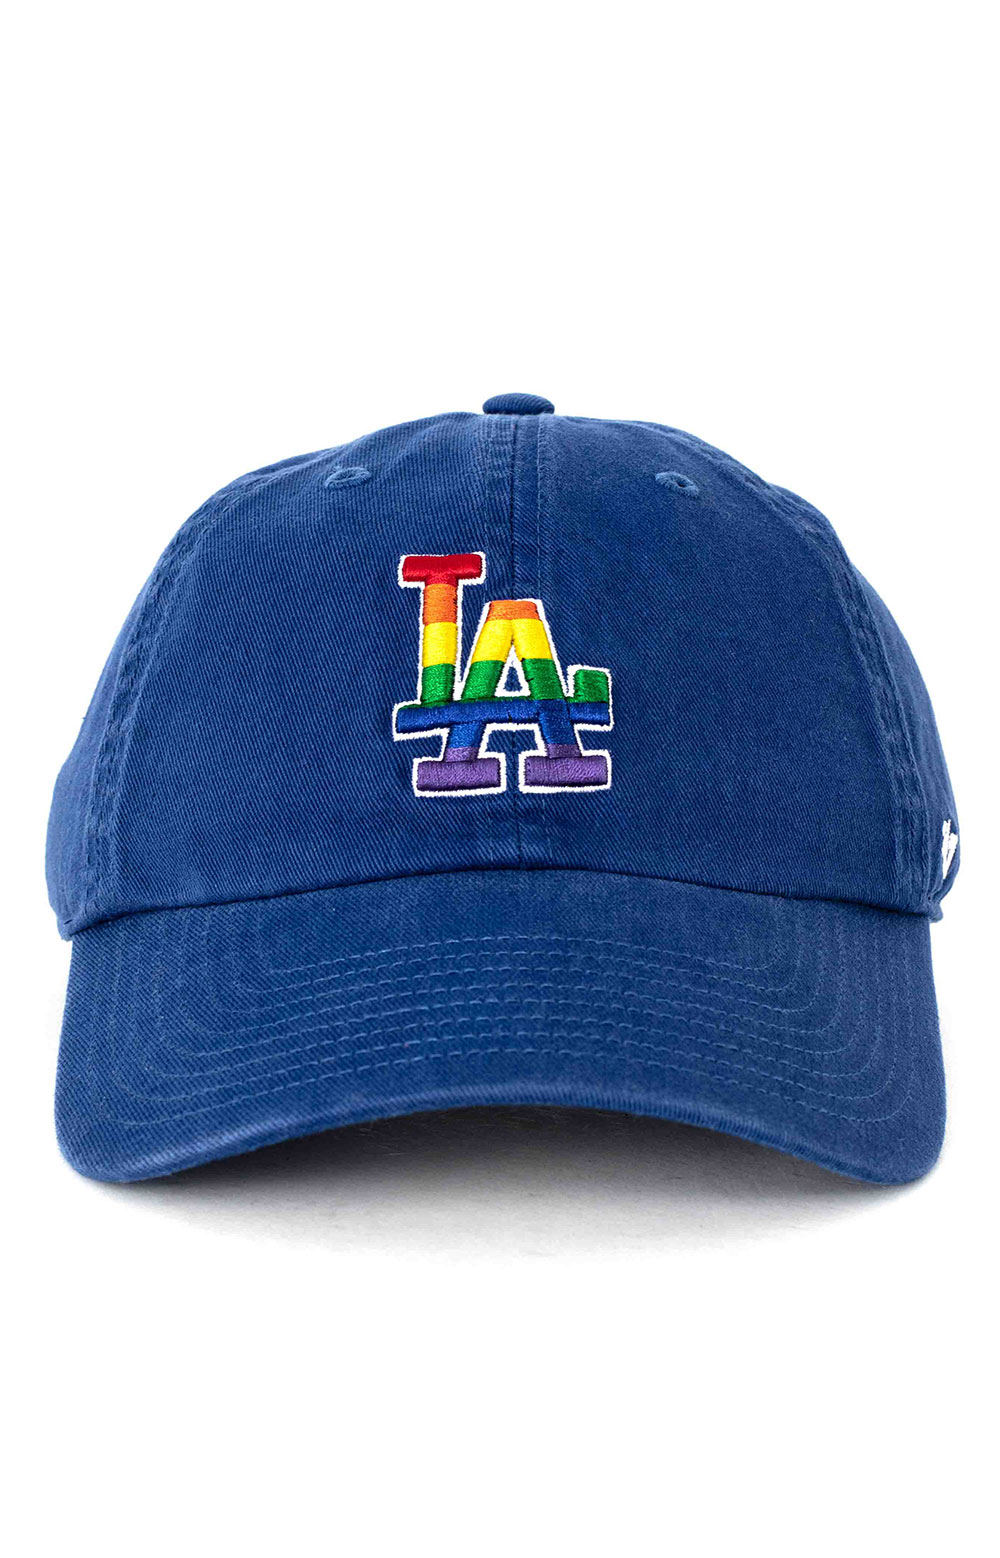 LA Dodgers Pride 47 Clean Up Cap - Royal Blue 2